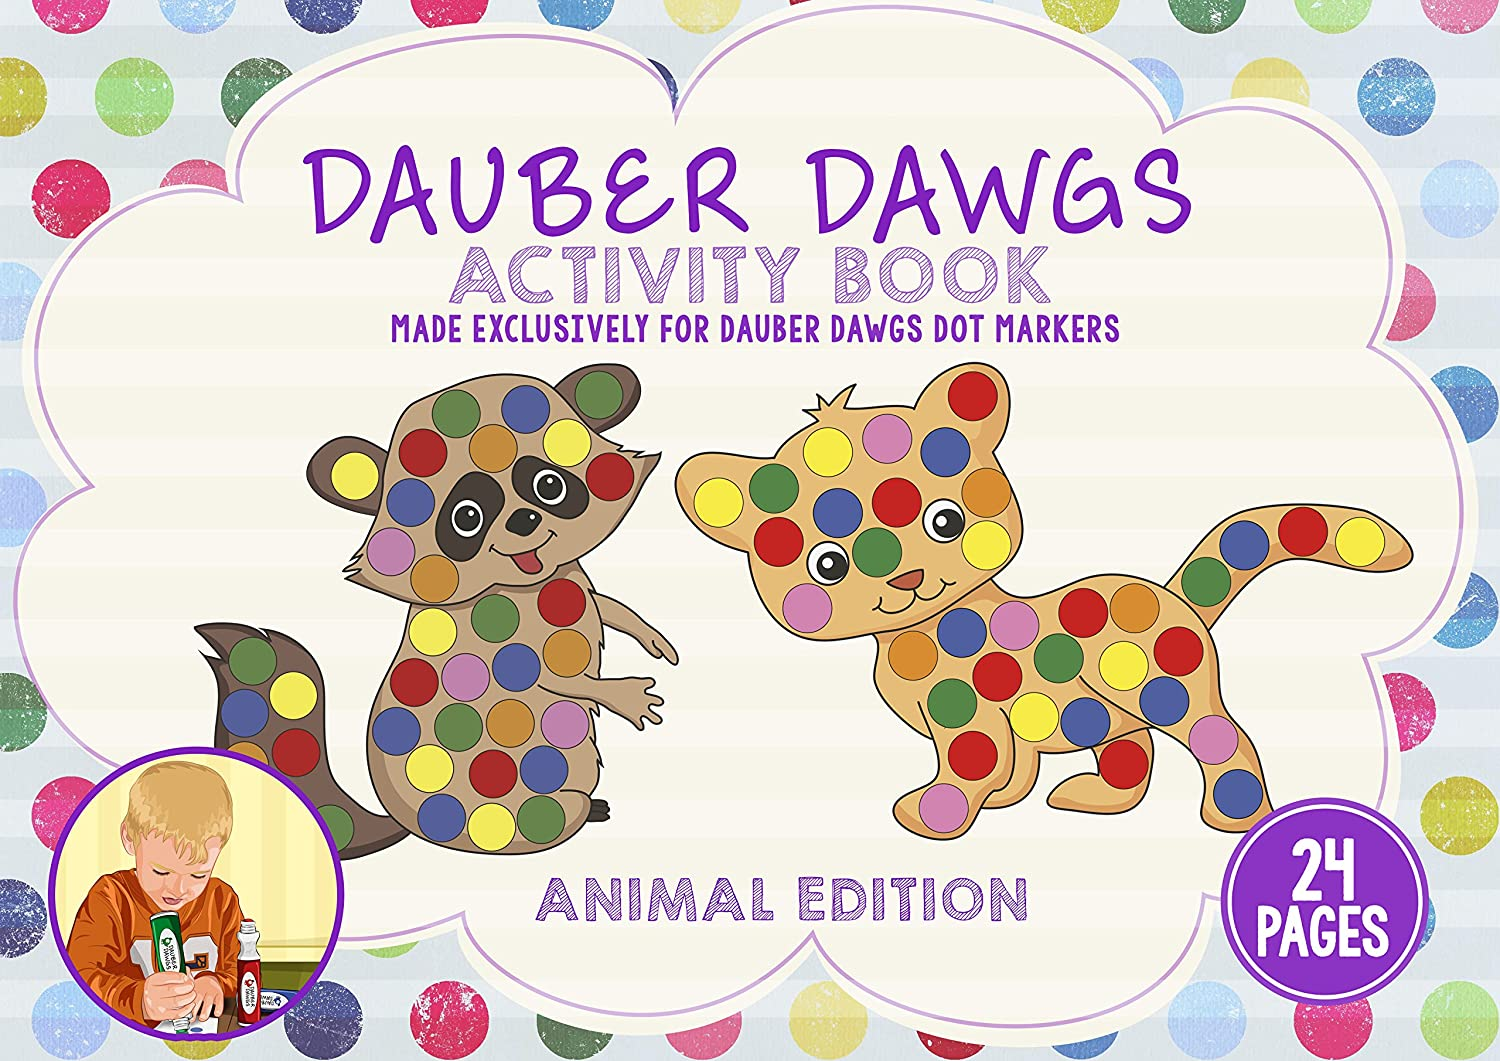 Amazon ANIMAL EDITION Dot Marker Activity Sheets 24 PAGES Made EXCLUSIVELY For Dauber Dawgs Markers Bingo Daubers With Free PDF Book Download